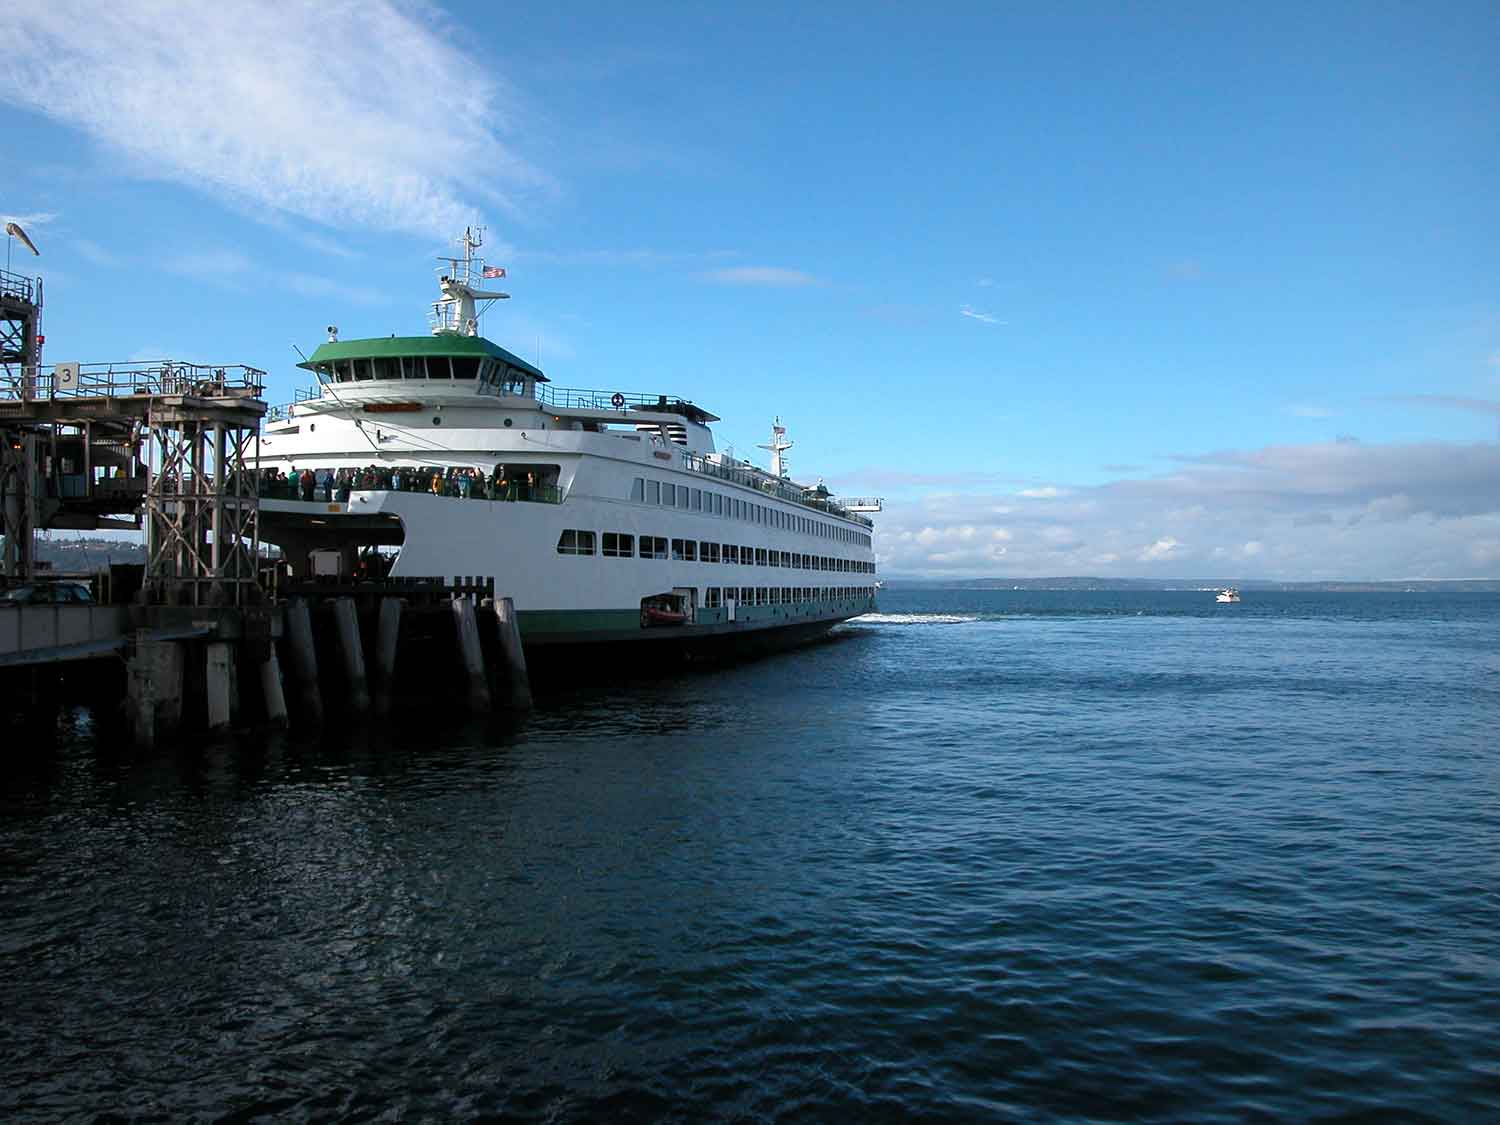 A ferry on the Puget Sound.